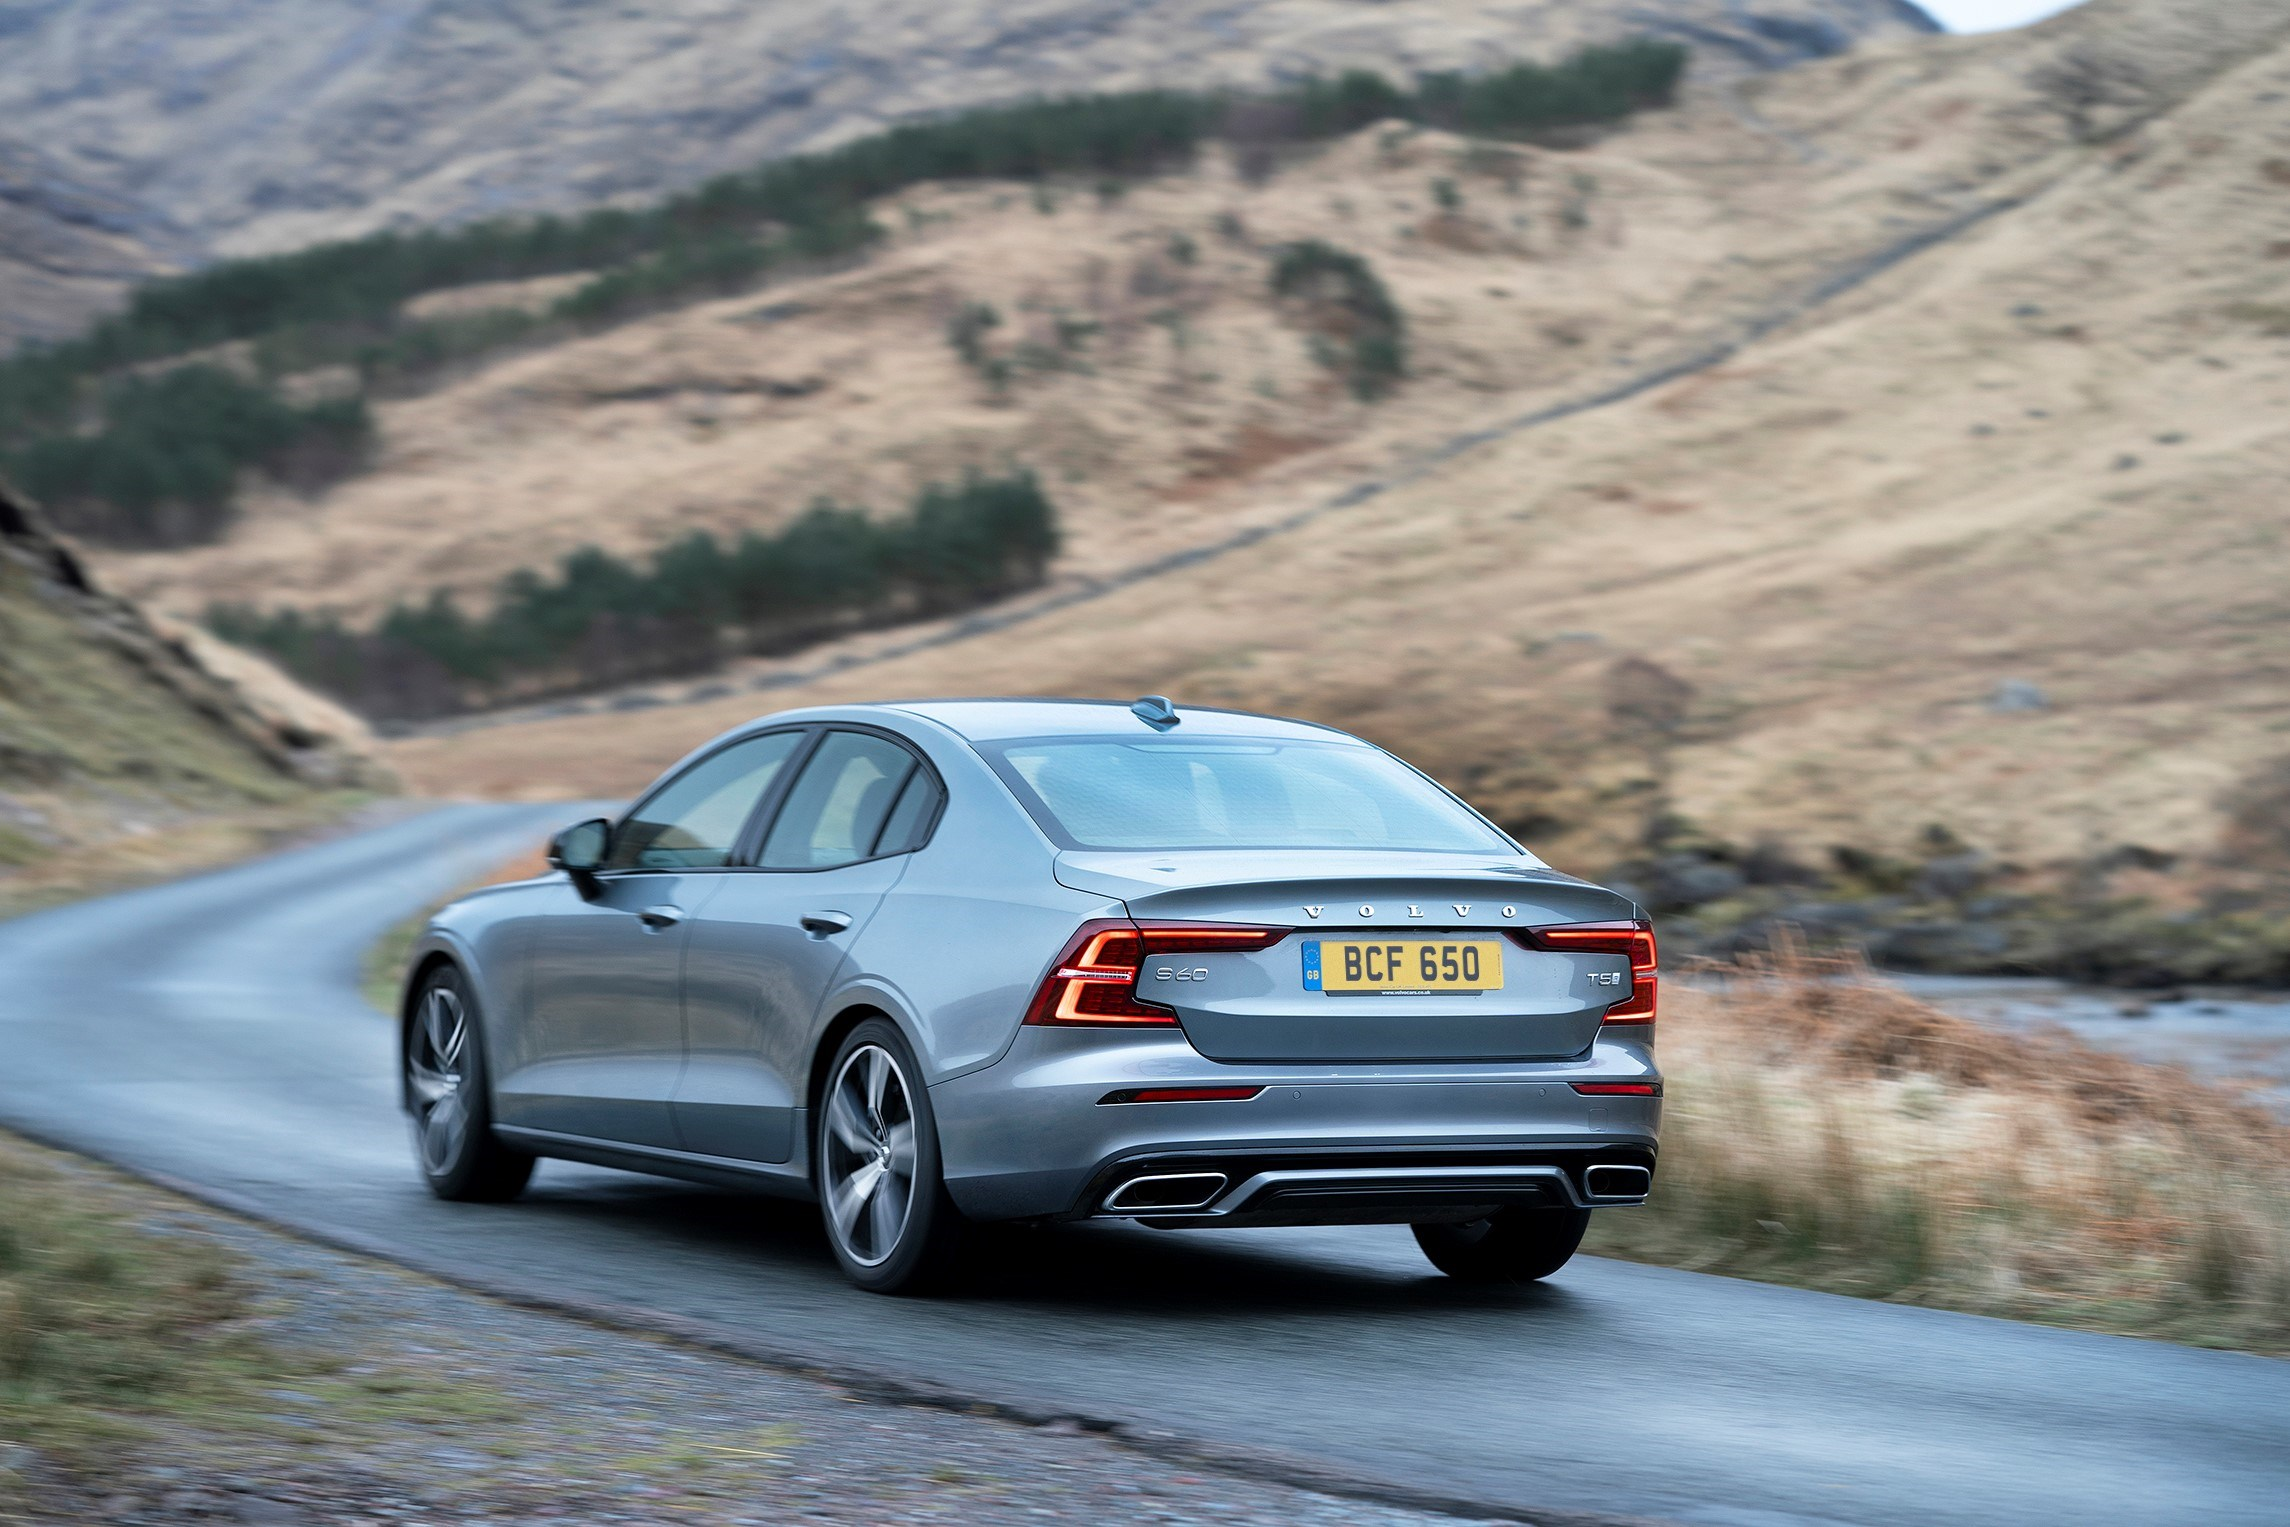 Rear view of a Volvo S60 driving on a road